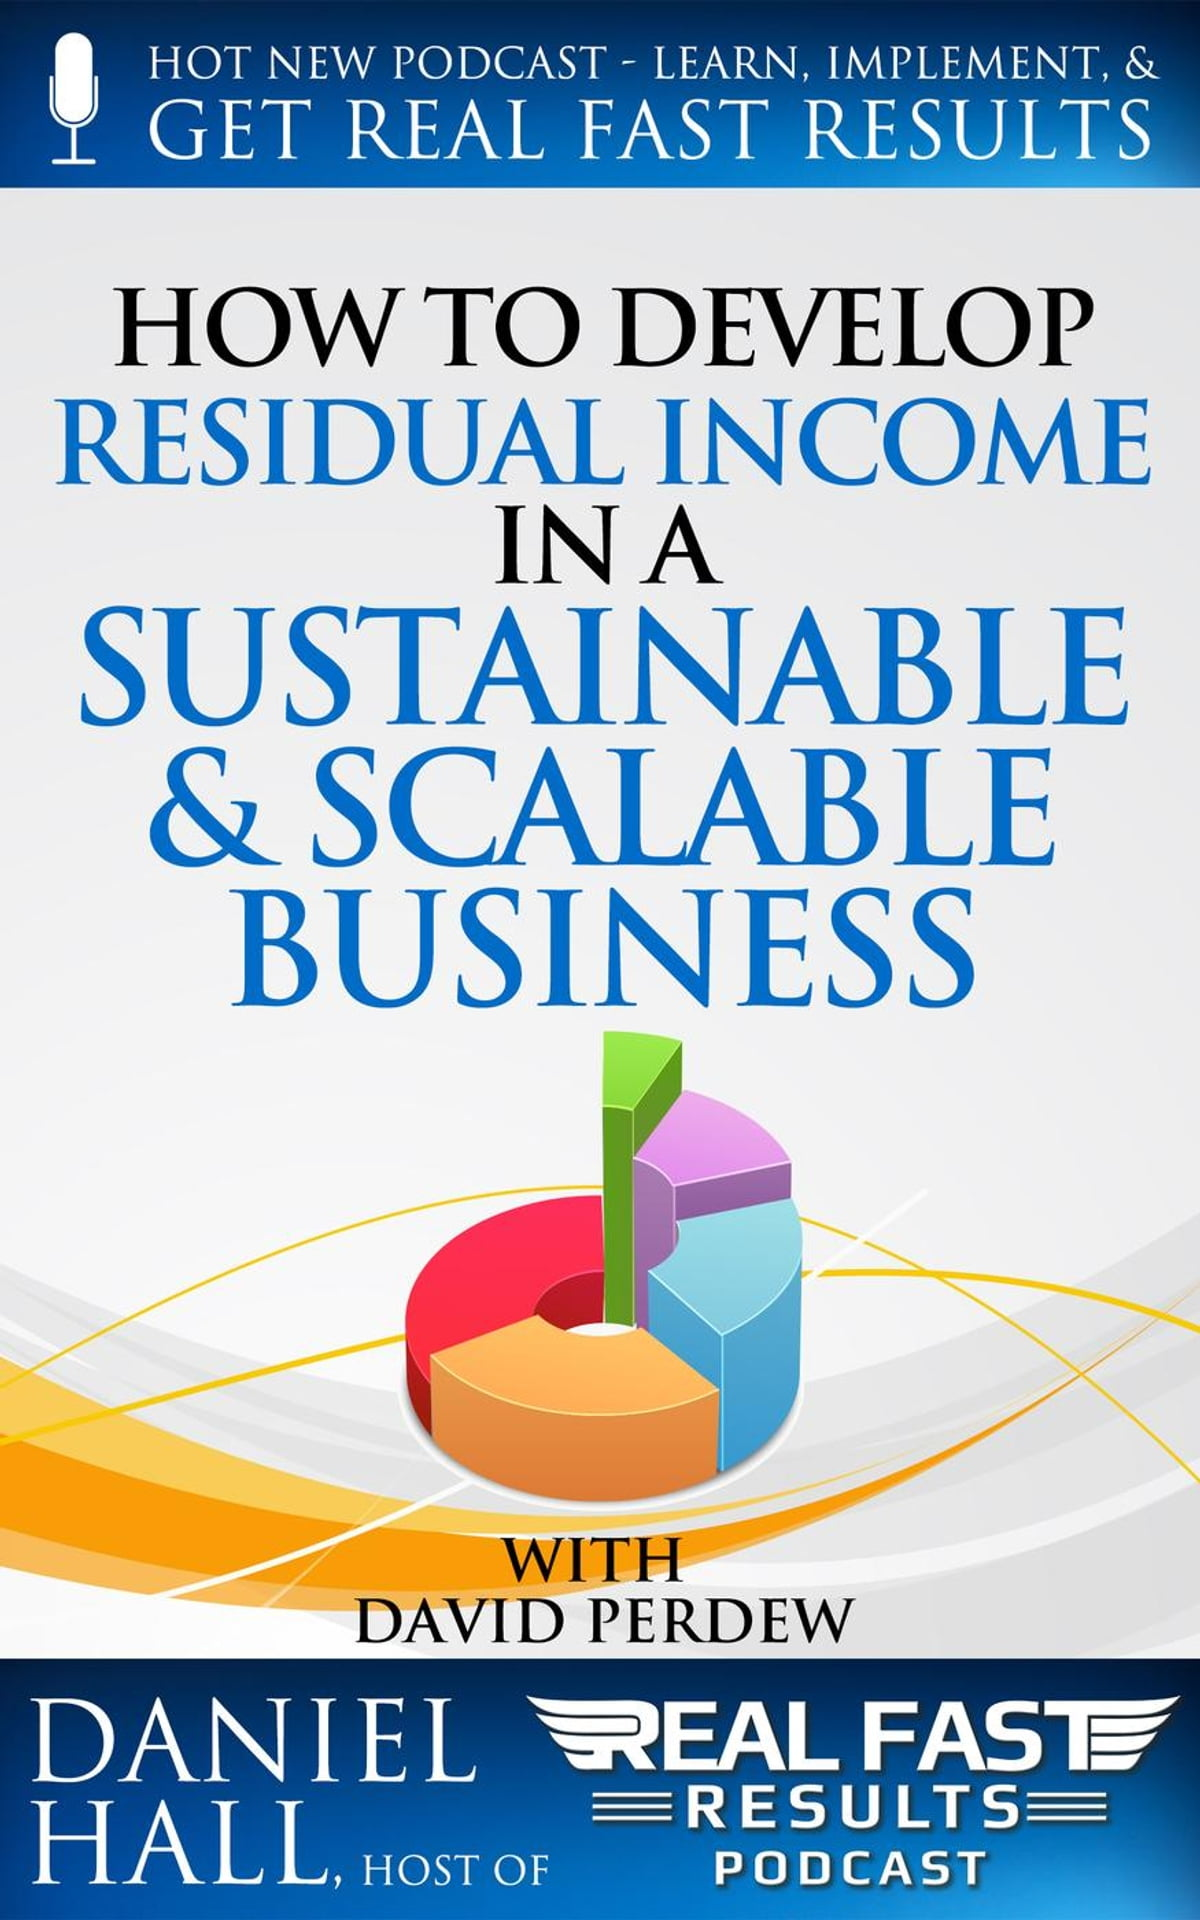 How to Develop Residual Income in a Sustainable & Scalable Business ebook  by Daniel Hall - Rakuten Kobo